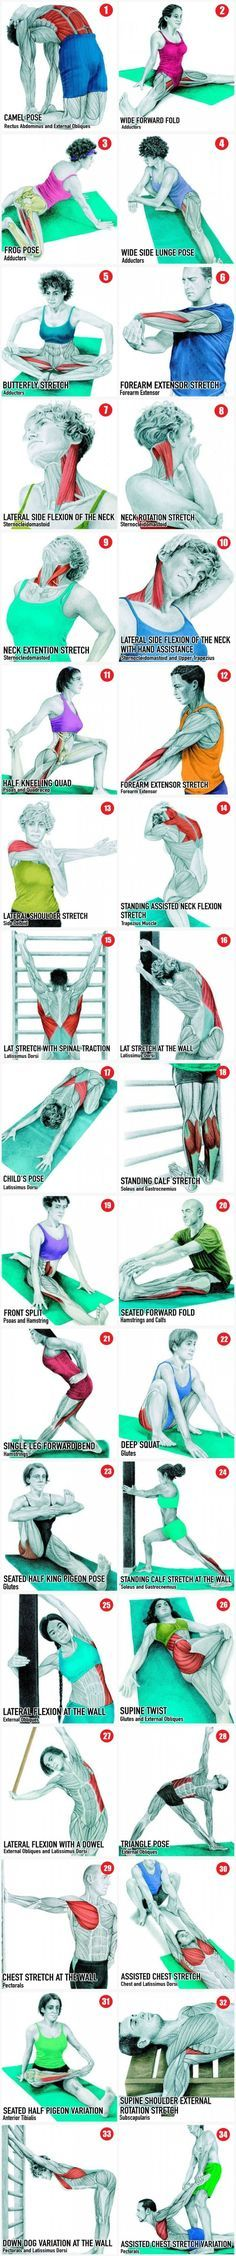 This Pin was discovered by The Journey Junkie I Yoga + Life Inspiration Tips. Did you know that yoga can also land you a strong core and enviable abs? We've pulled four of the best core strength yoga poses and put them into a workout routine you can do anytime and anywhere in just 6 minutes!